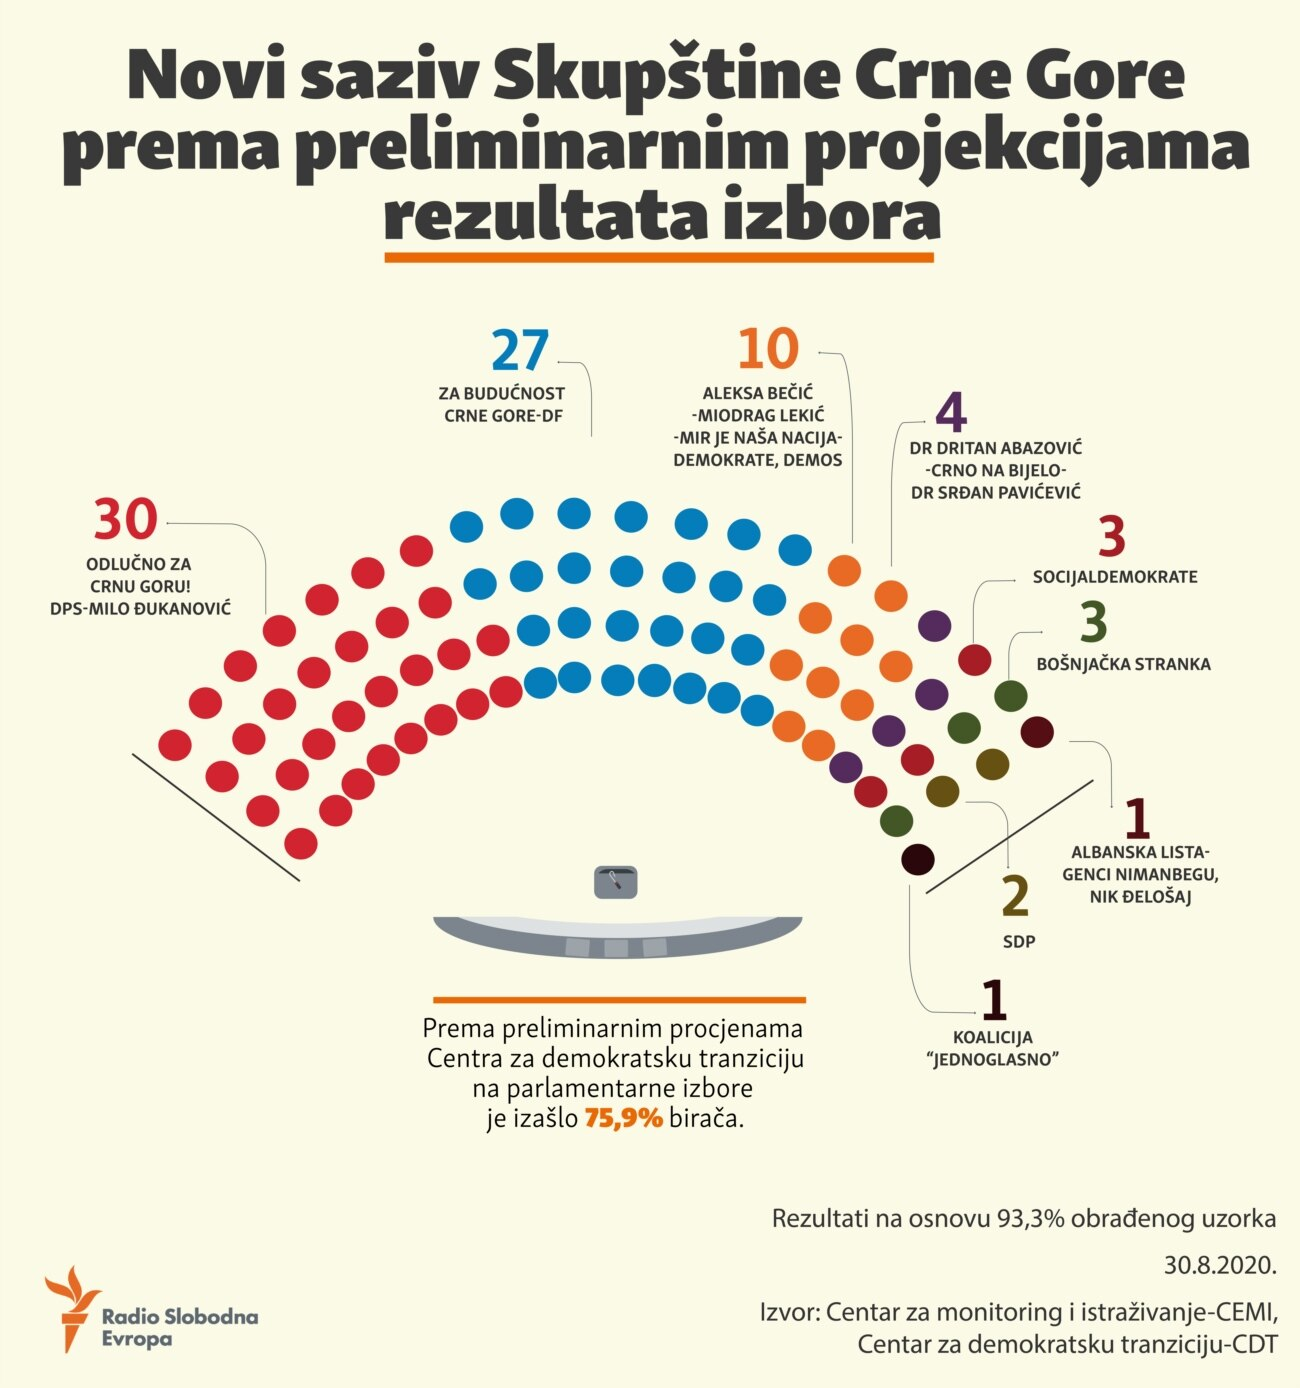 Infographic: Seats in the Parliament of Montenegro according to preliminary projections of election results